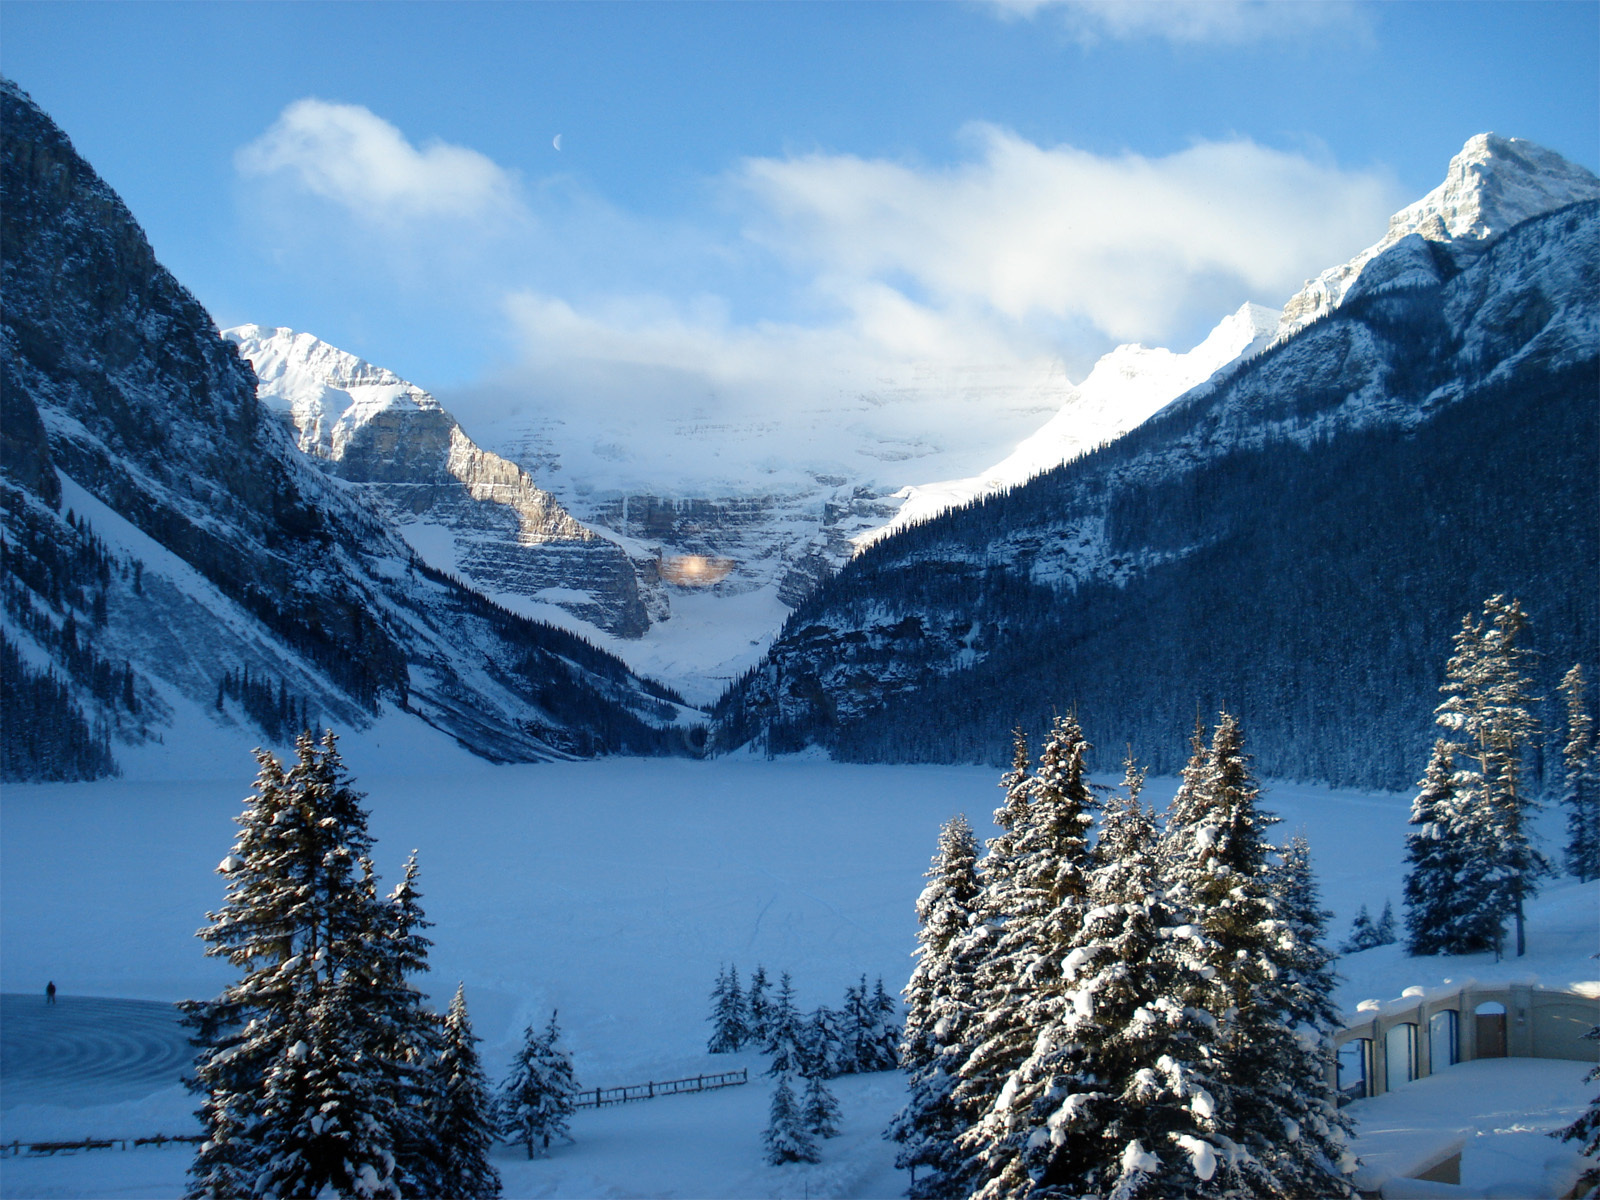 http://images2.fanpop.com/image/photos/9700000/Lake-Louise-canada-9727980-1600-1200.jpg